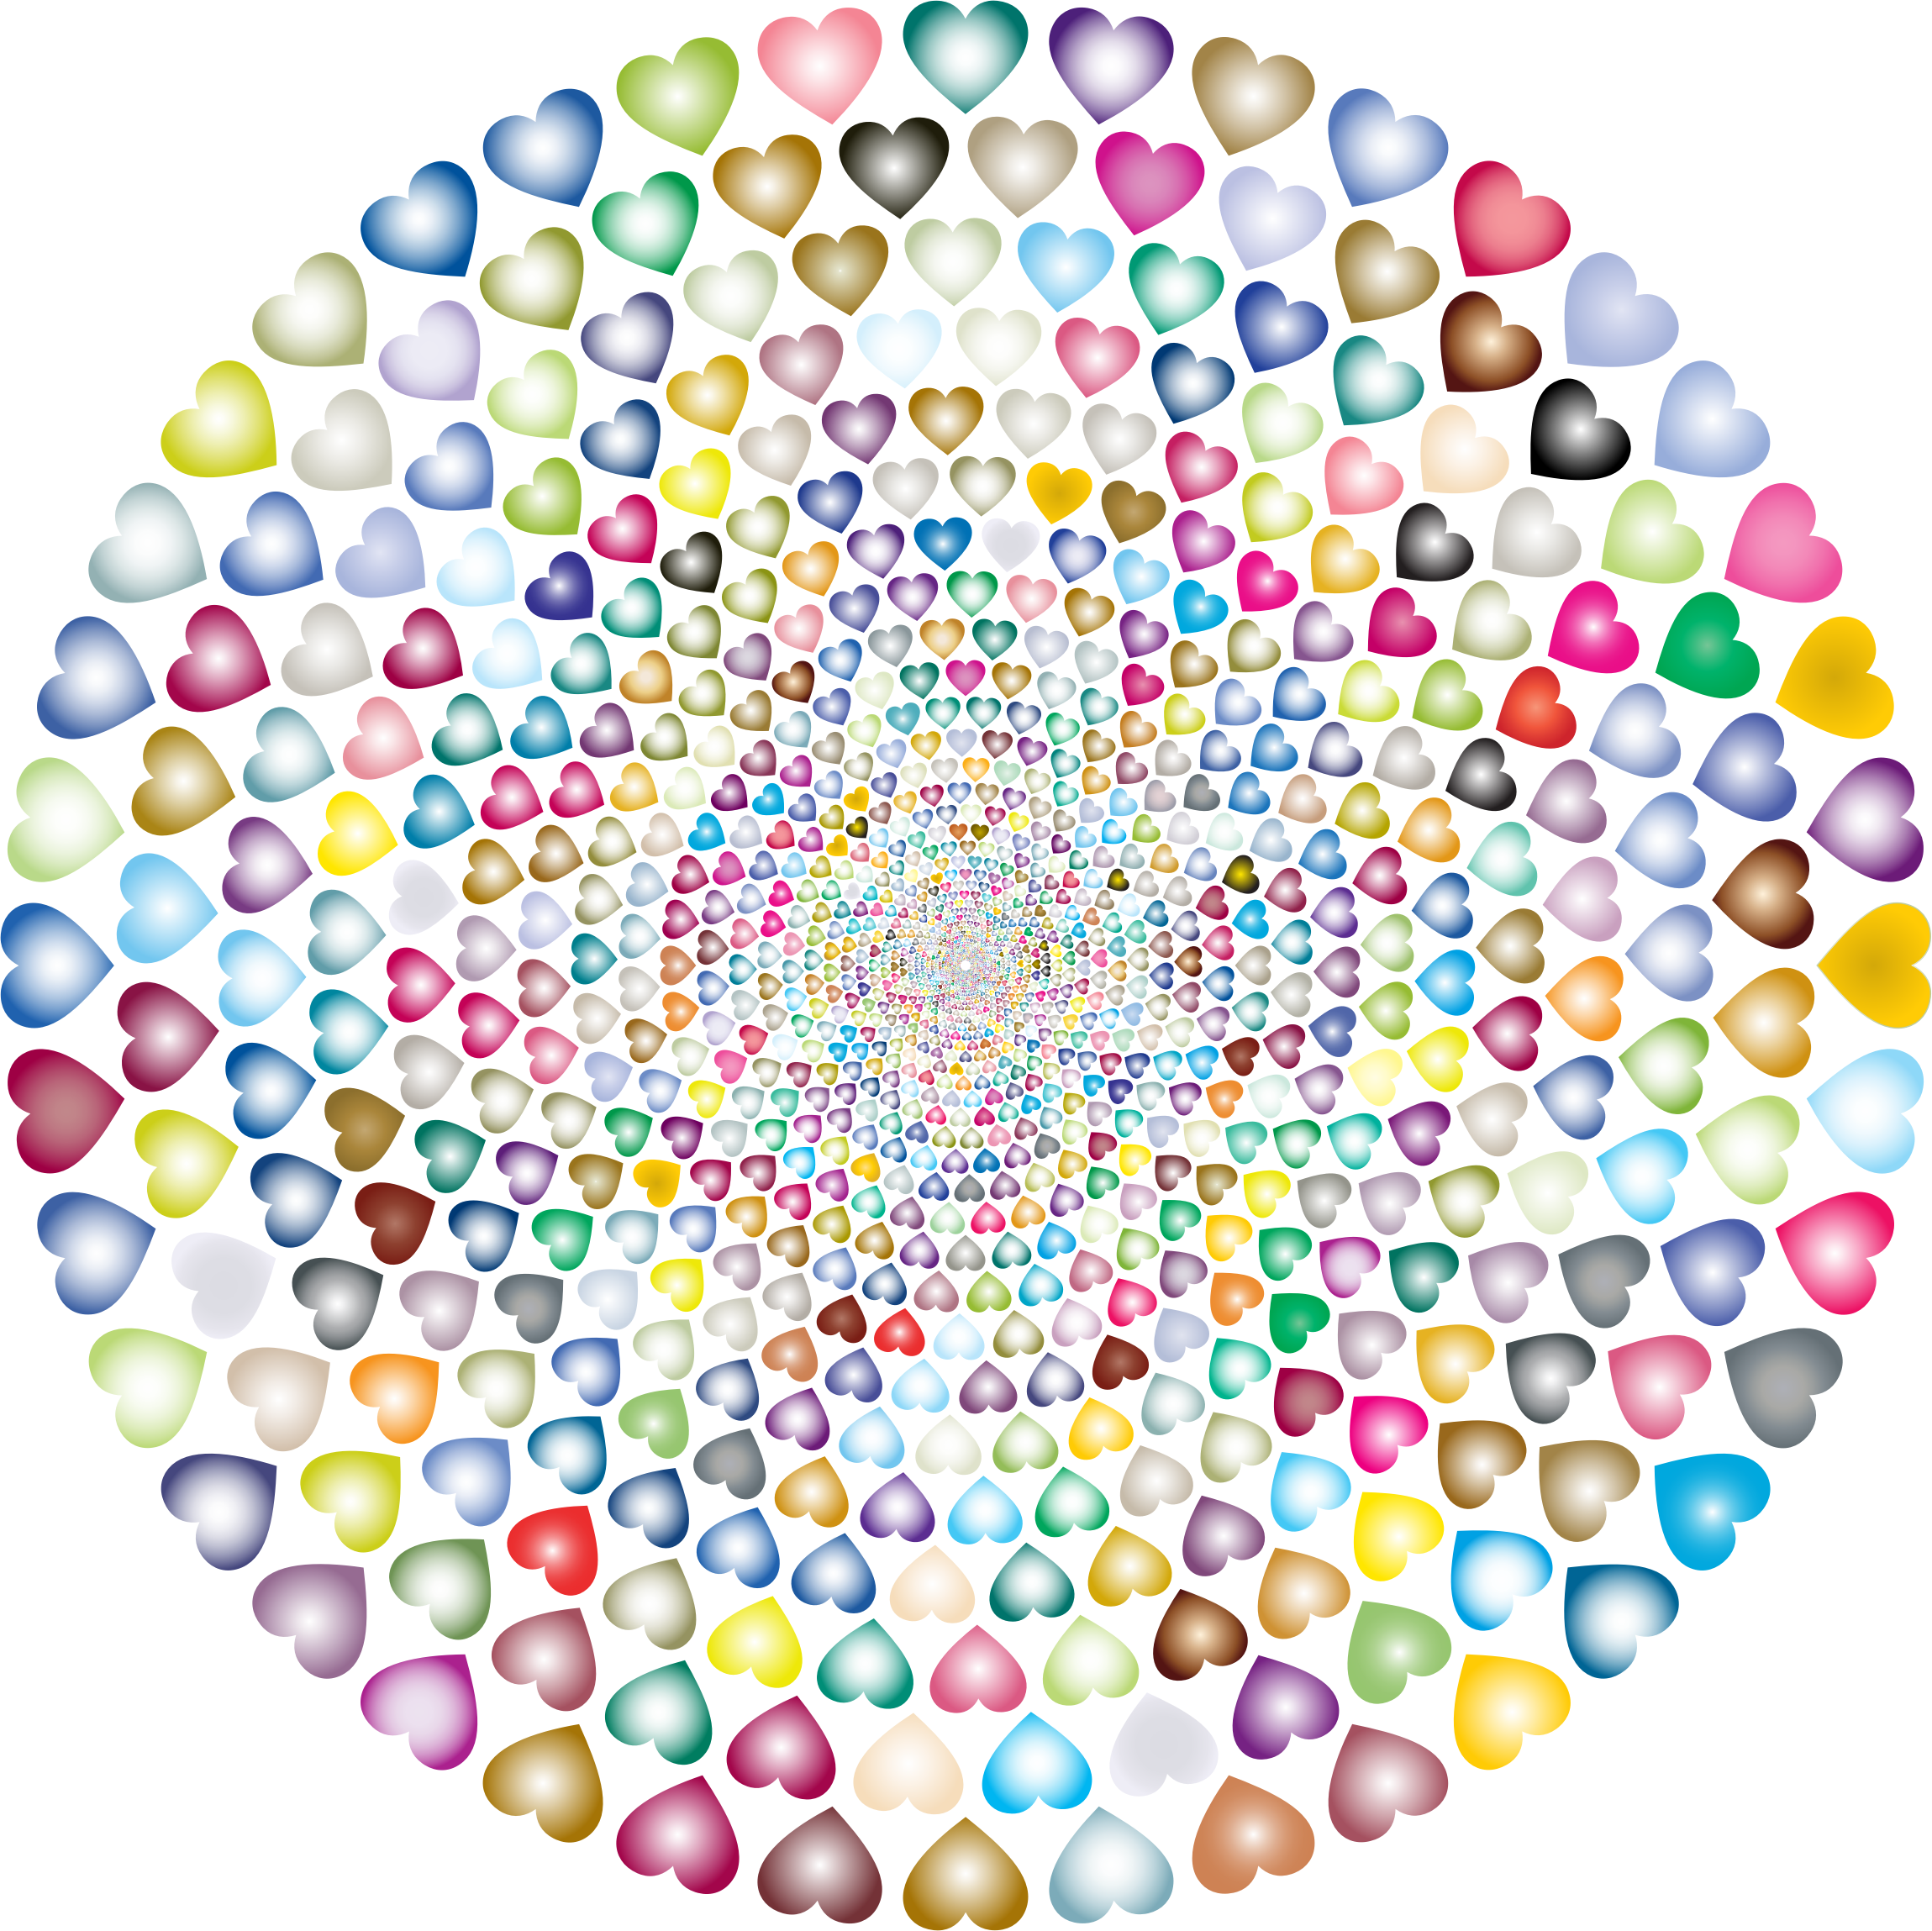 Colorful Hearts Vortex 5 by GDJ